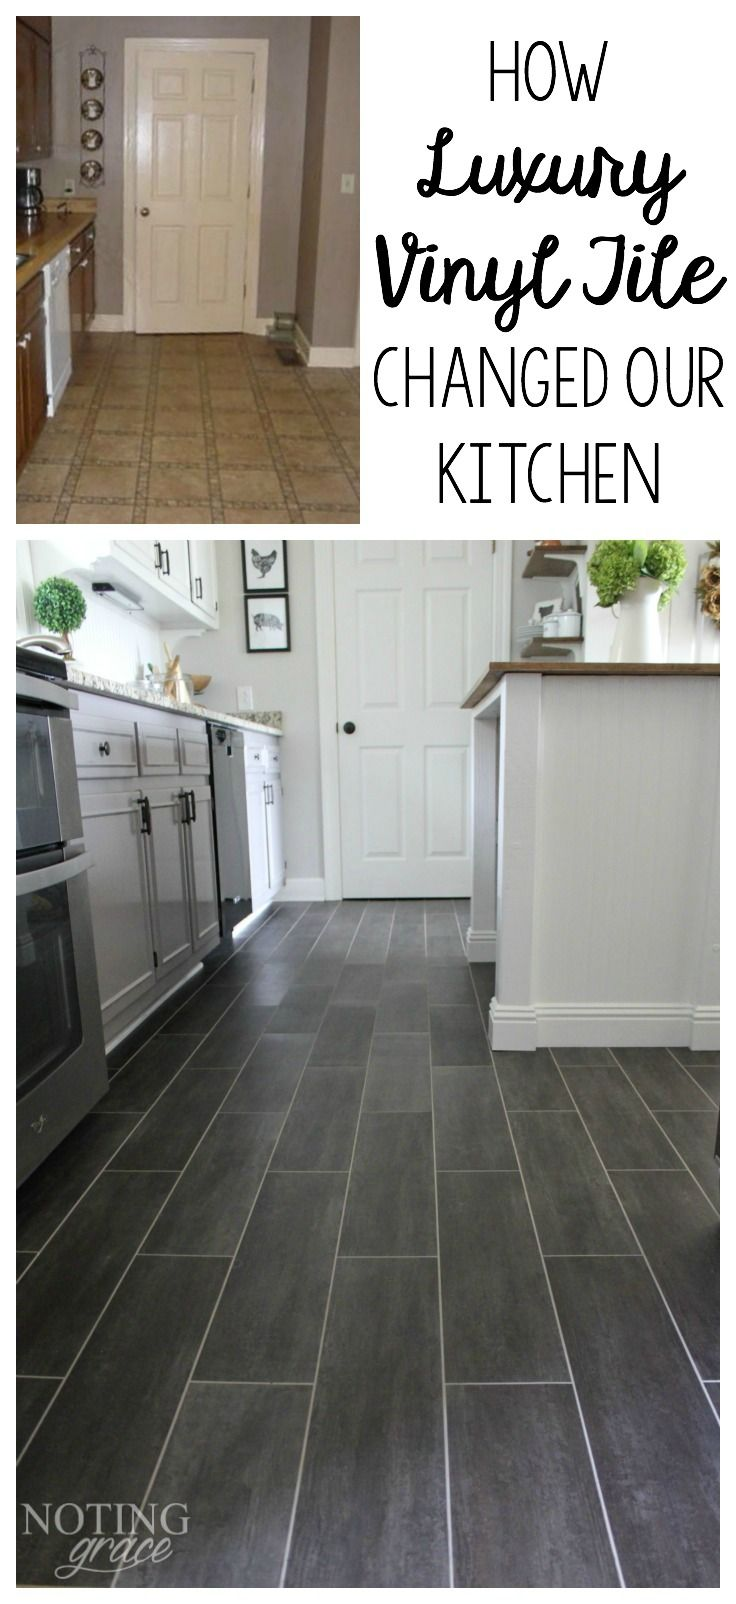 It took only 3 days and $400 to completely transform our kitchen with DIY Flooring - groutable Luxury Vinyl Tile.